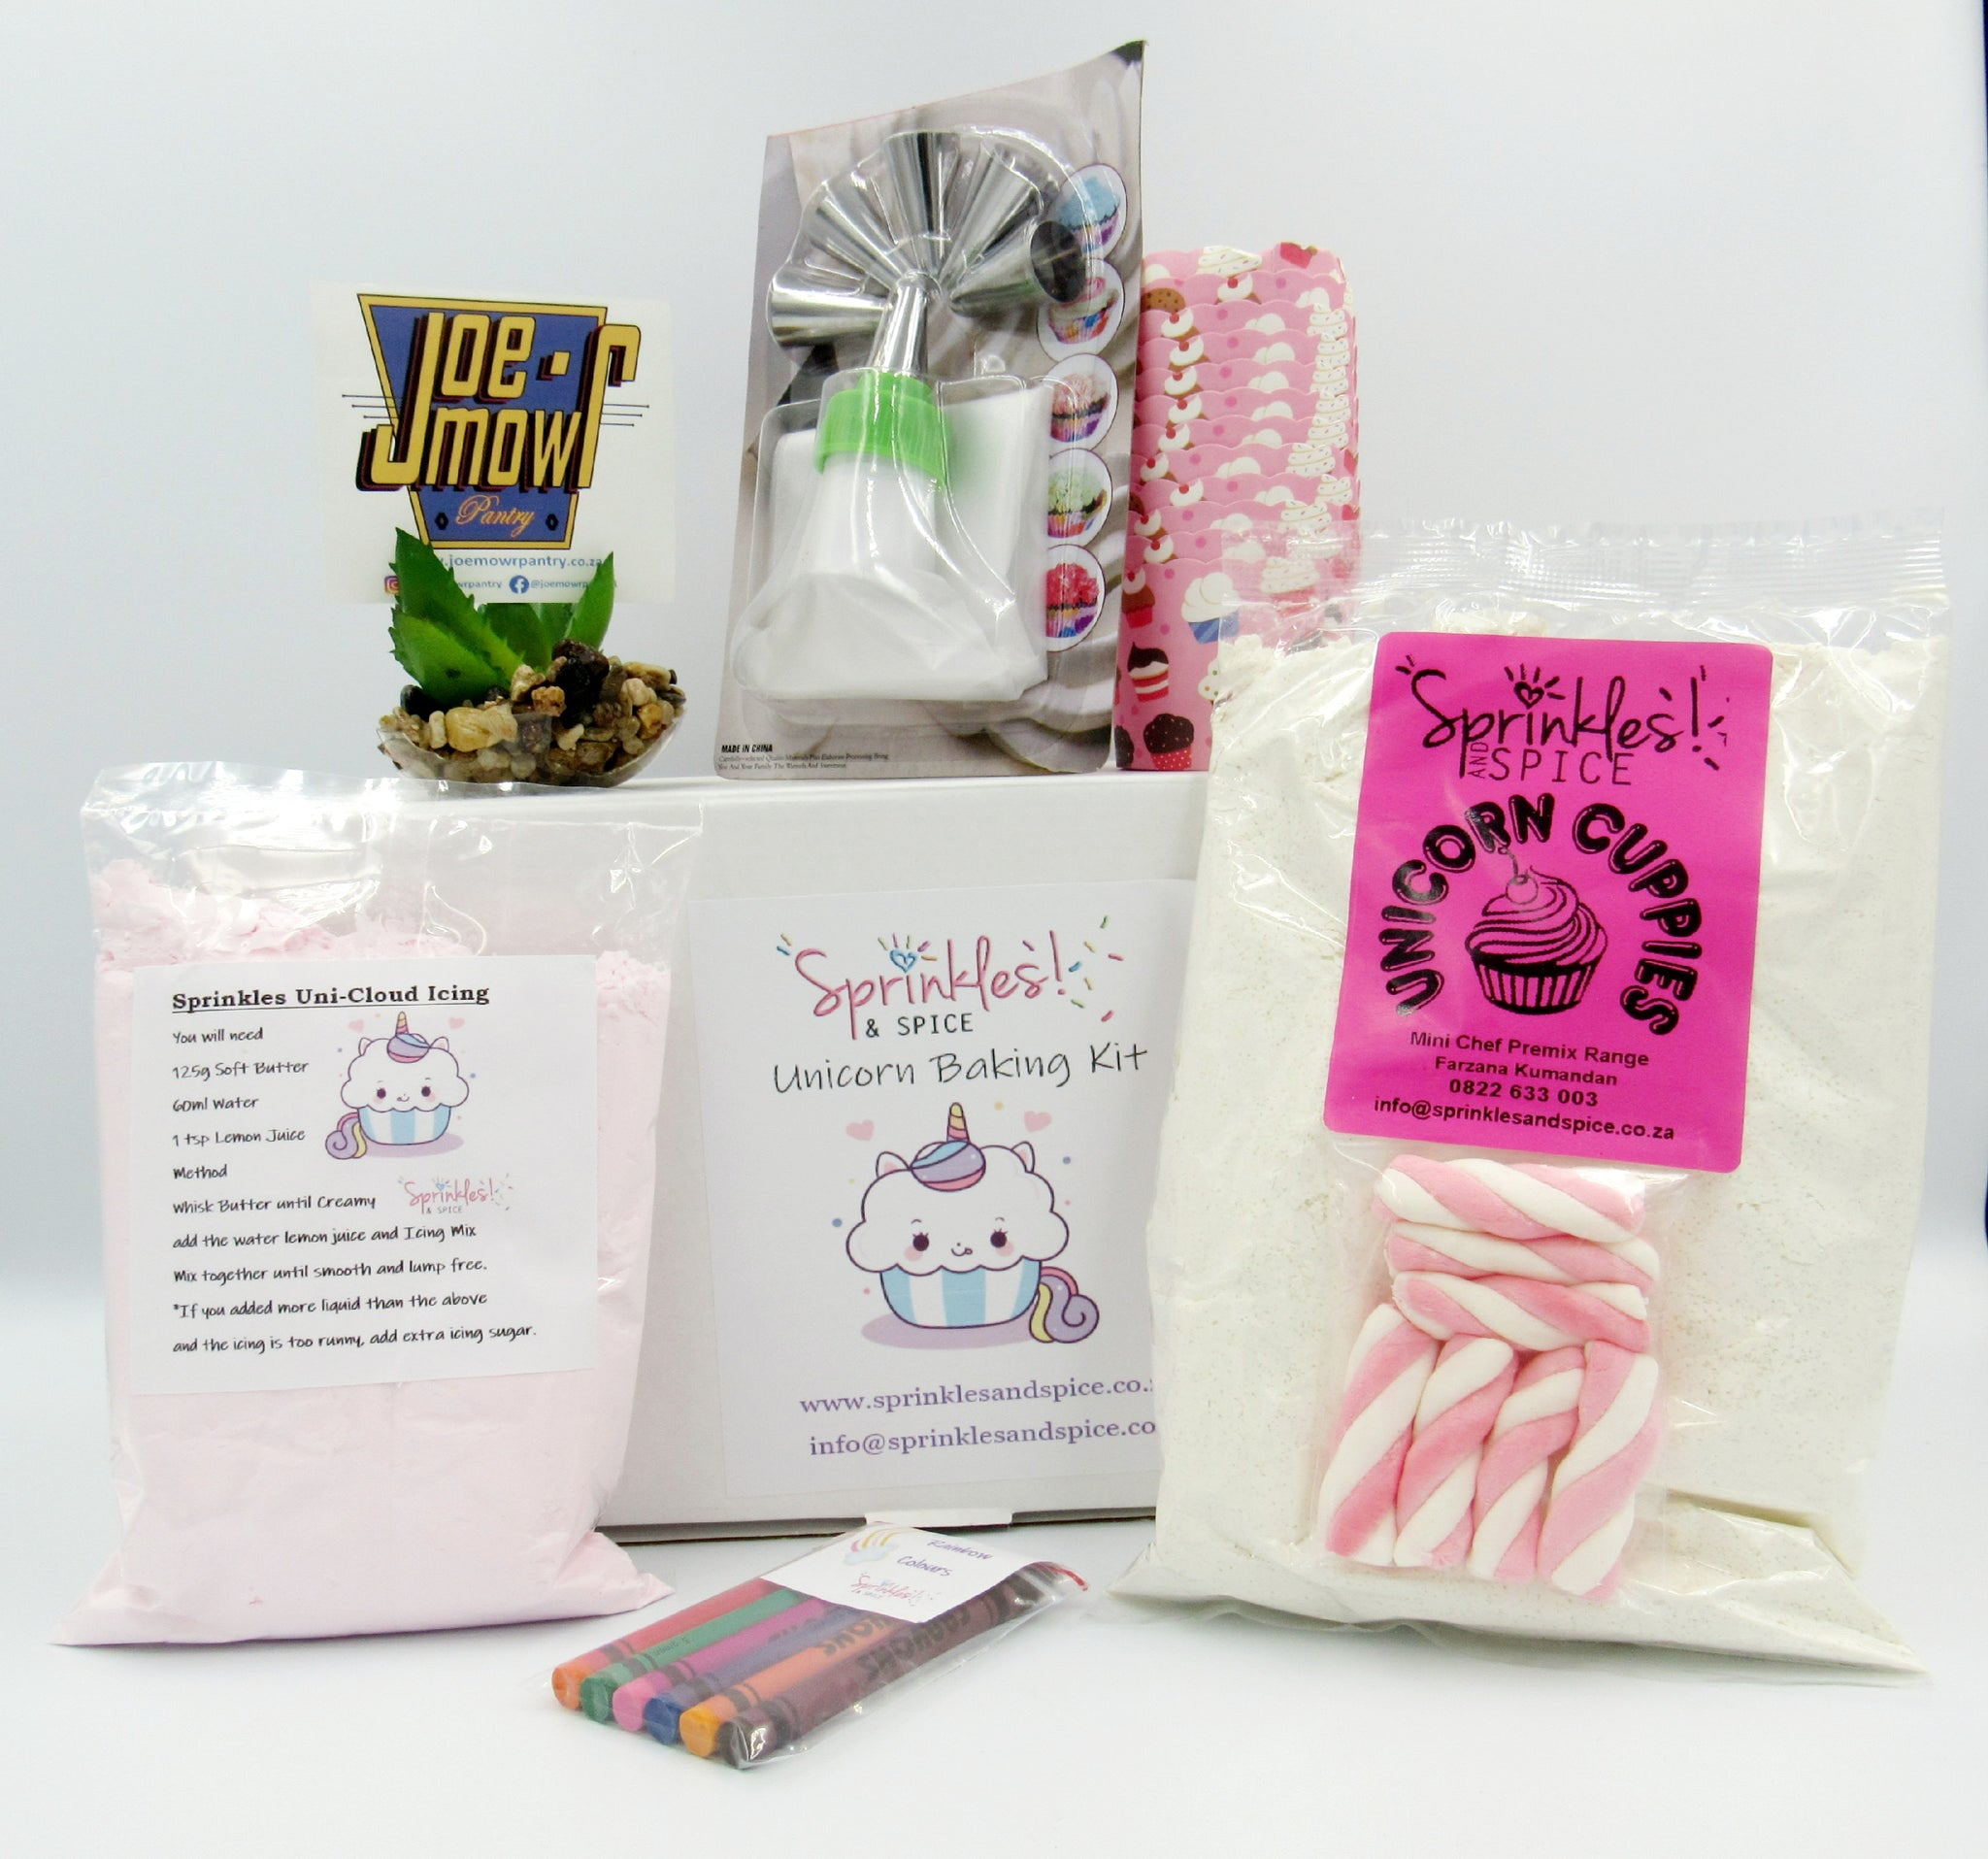 Sprinkles and Spice Unicorn Cuppies Baking Kit